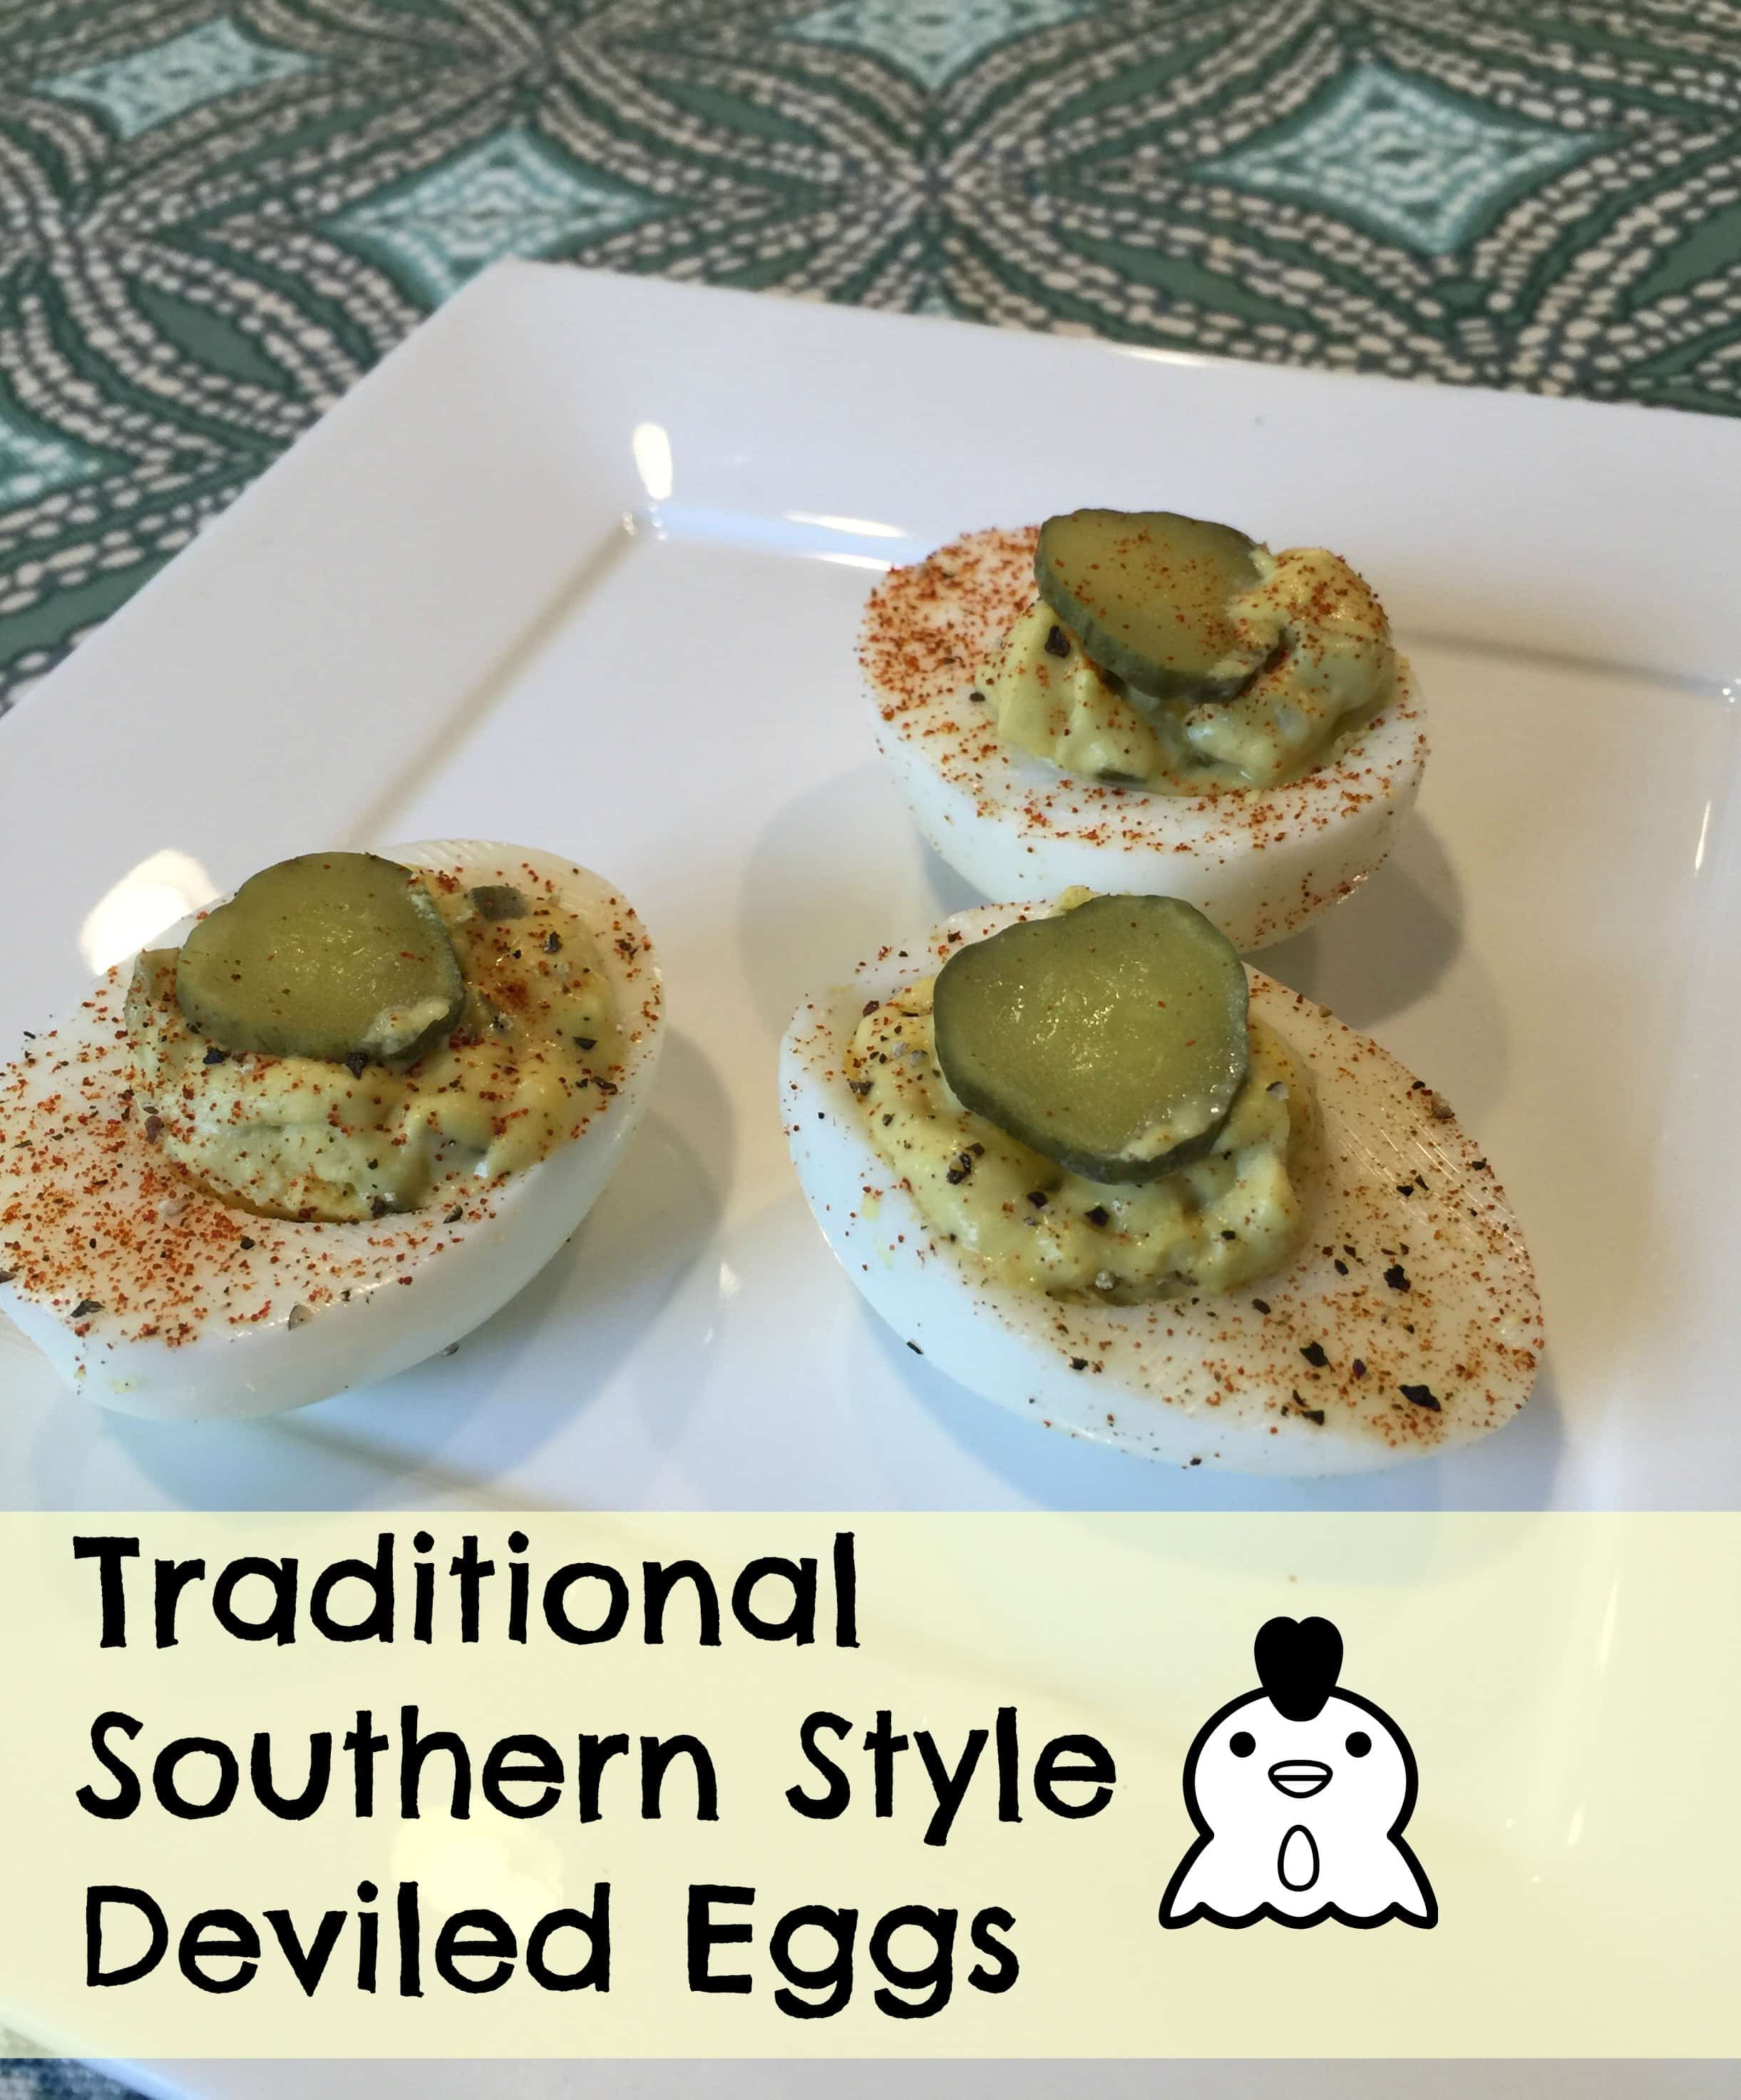 Traditional Southern Style Deviled Eggs